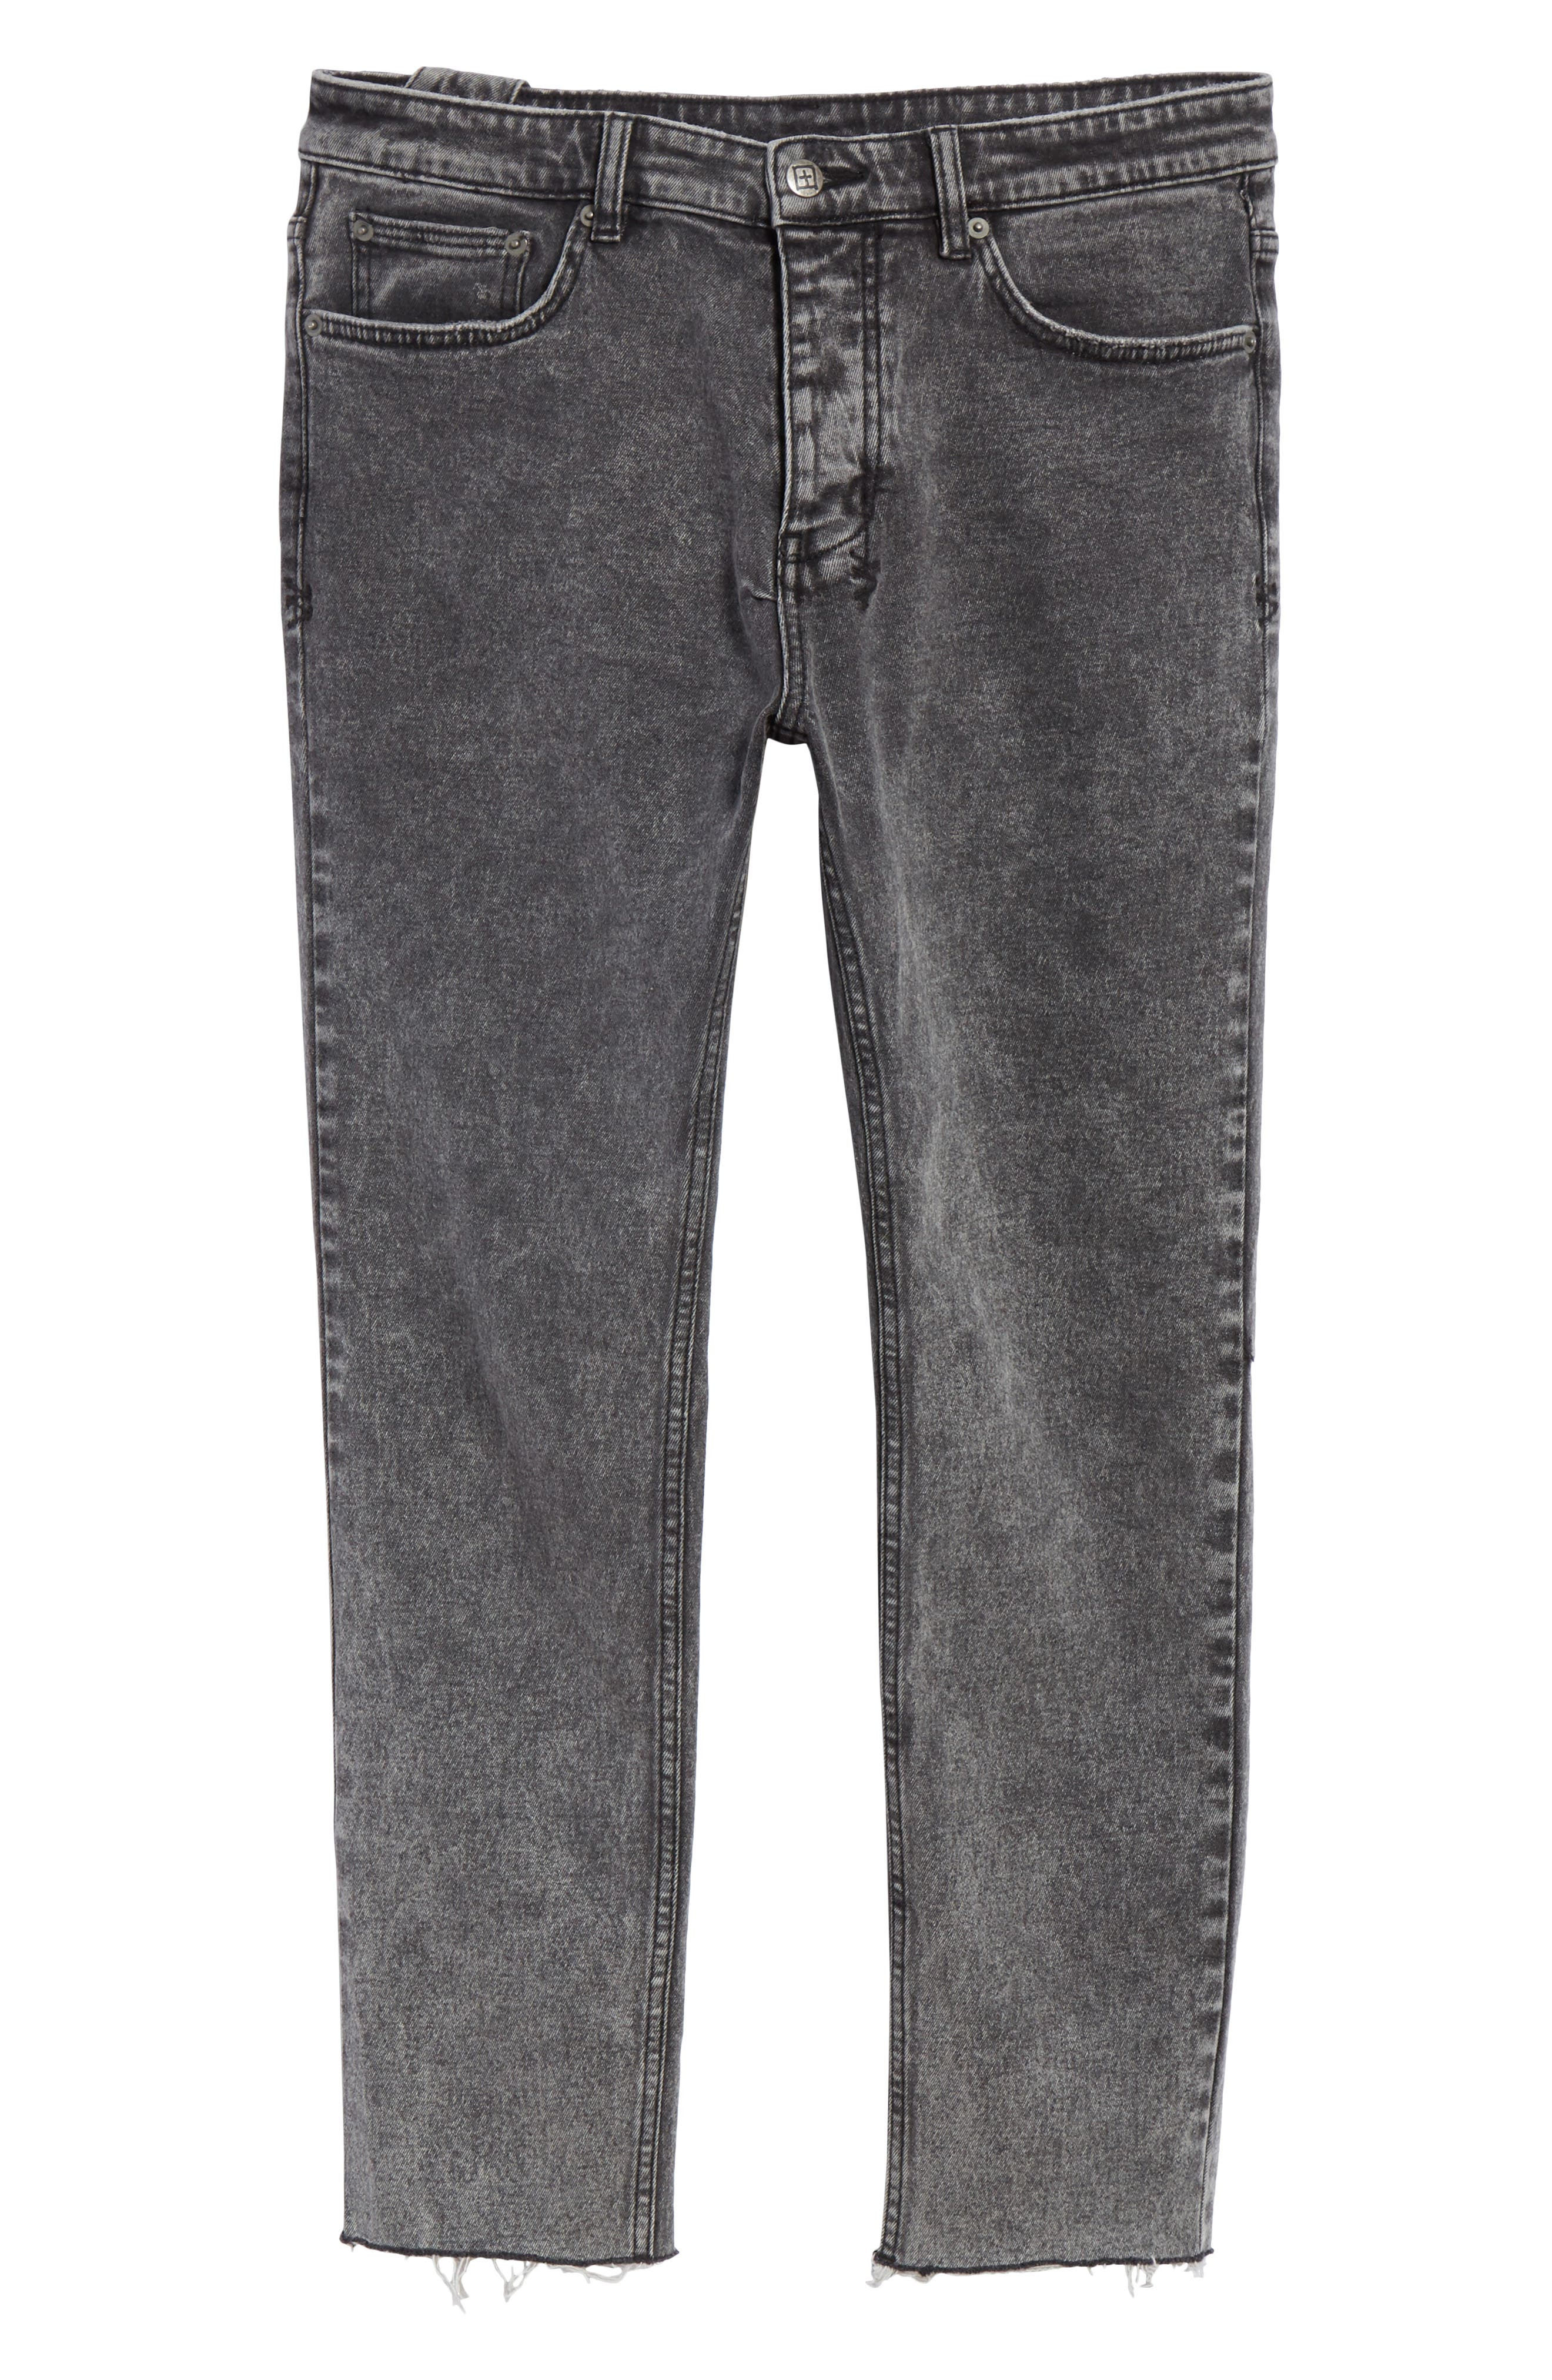 Chitch Chop Acid Attack Cropped Jeans,                             Alternate thumbnail 6, color,                             BLACK